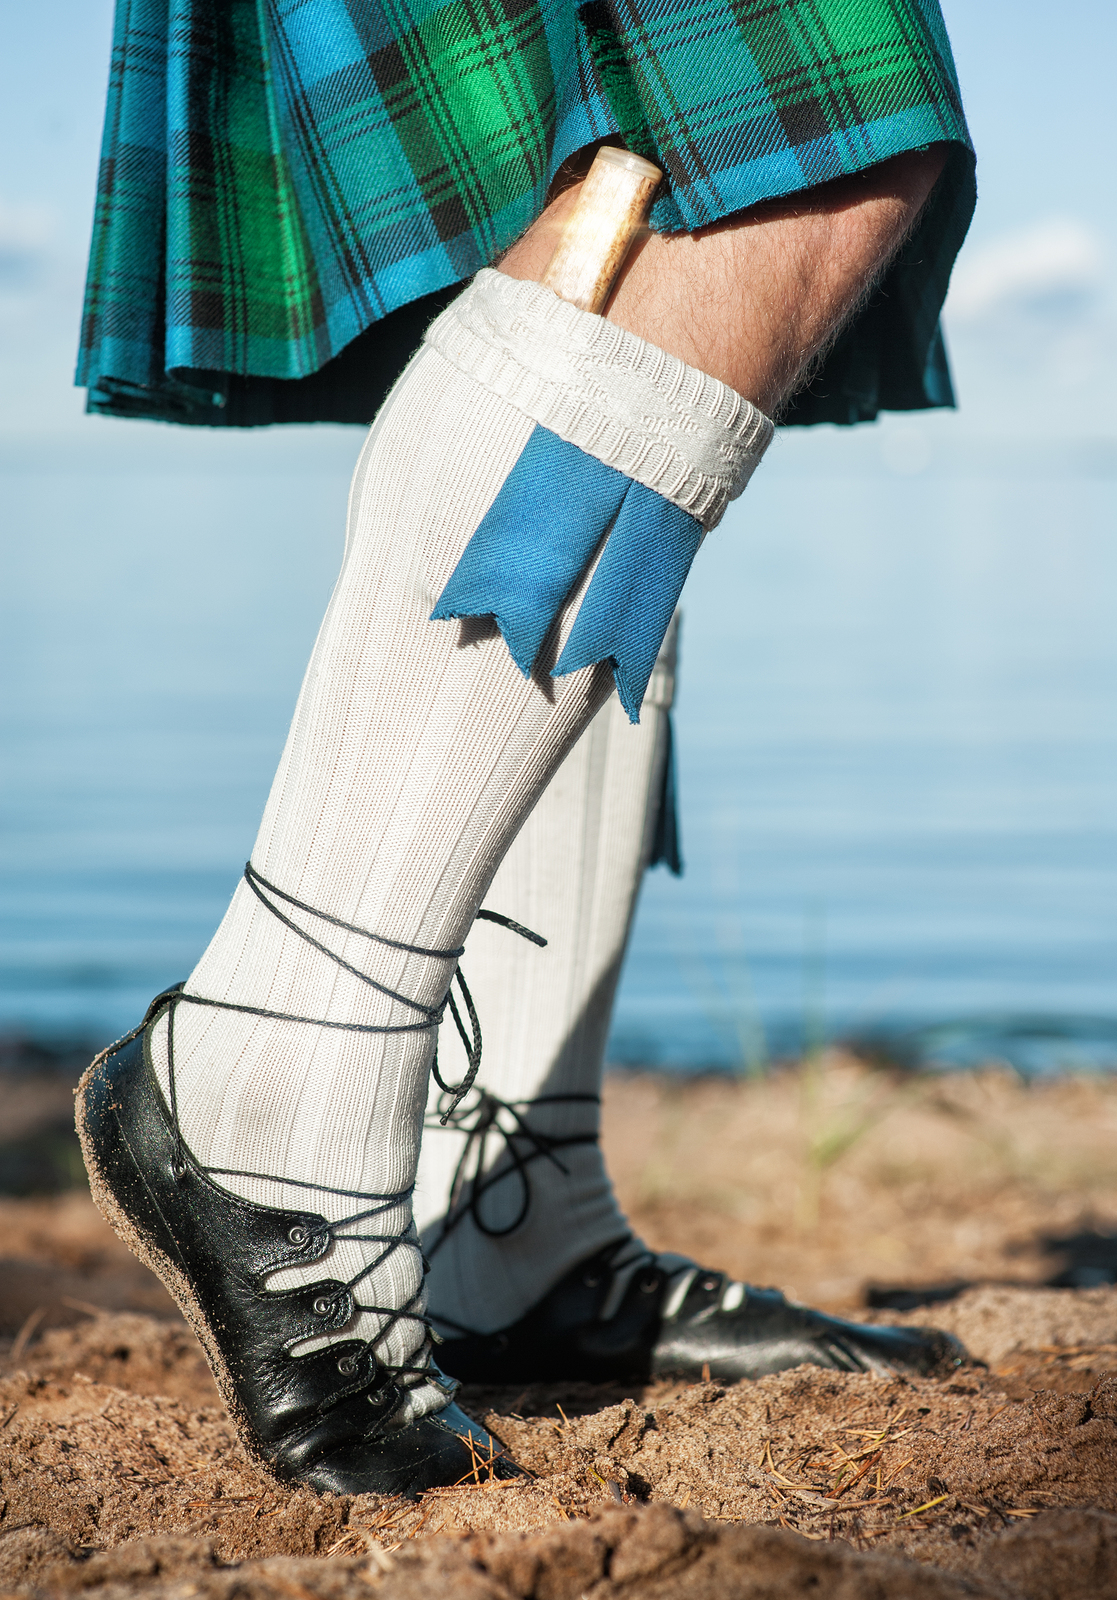 18f514e19 Looking to Wear a Scottish Kilt? Here's What You Should Know. - UT Kilts